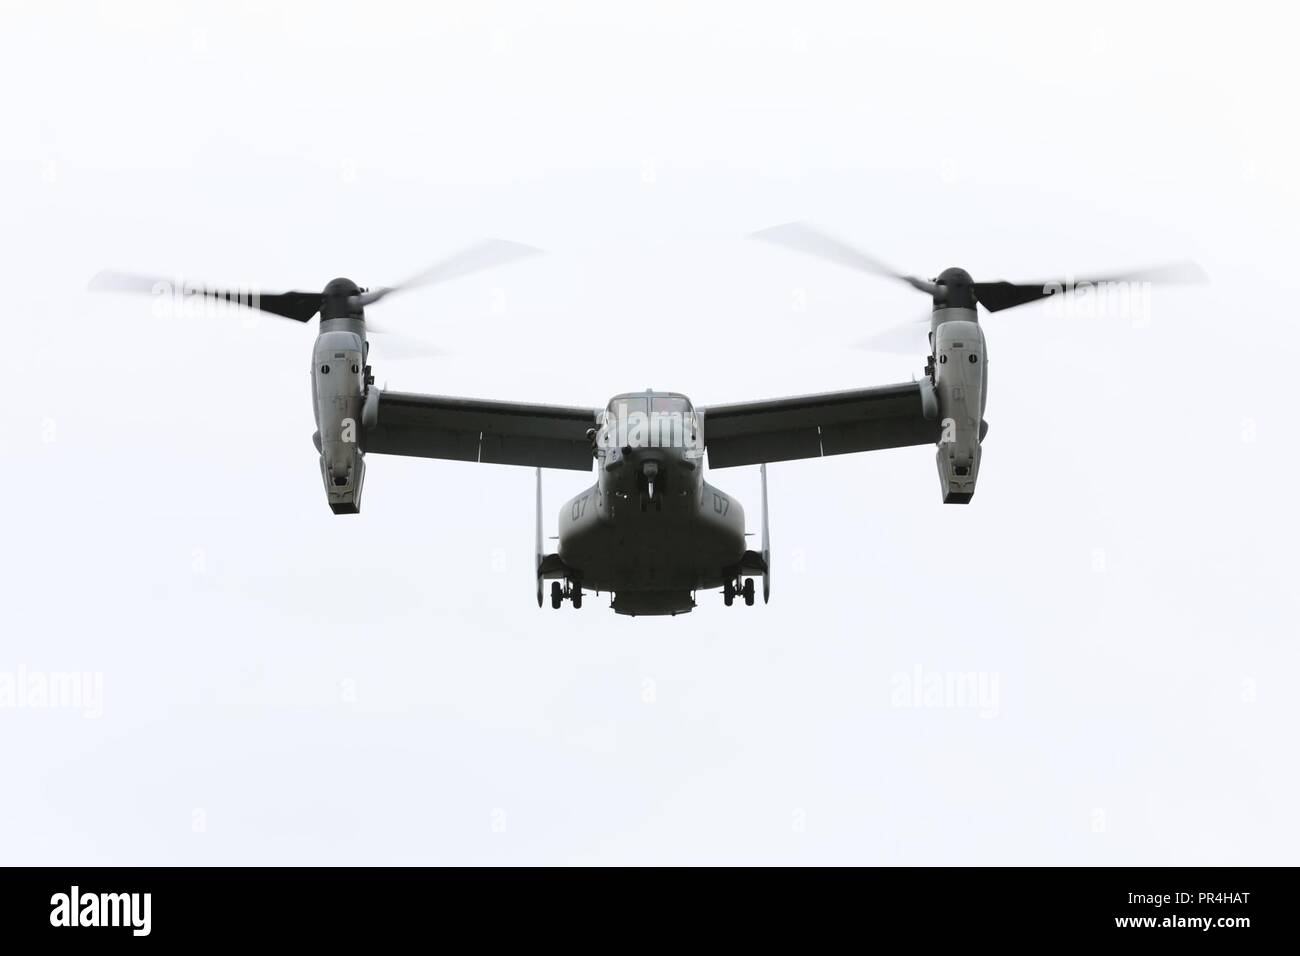 An MV-22 Osprey assigned to Marine Medium Tiltrotor Squadron 363 (VMM-363), conducts a confined area landing exercise on near the Kahuku Training Area, Sept. 13, 2018. The training provided an opportunity for pilots and crew chiefs to improve their proficiency and experience in flying around a tropical environment. Stock Photo